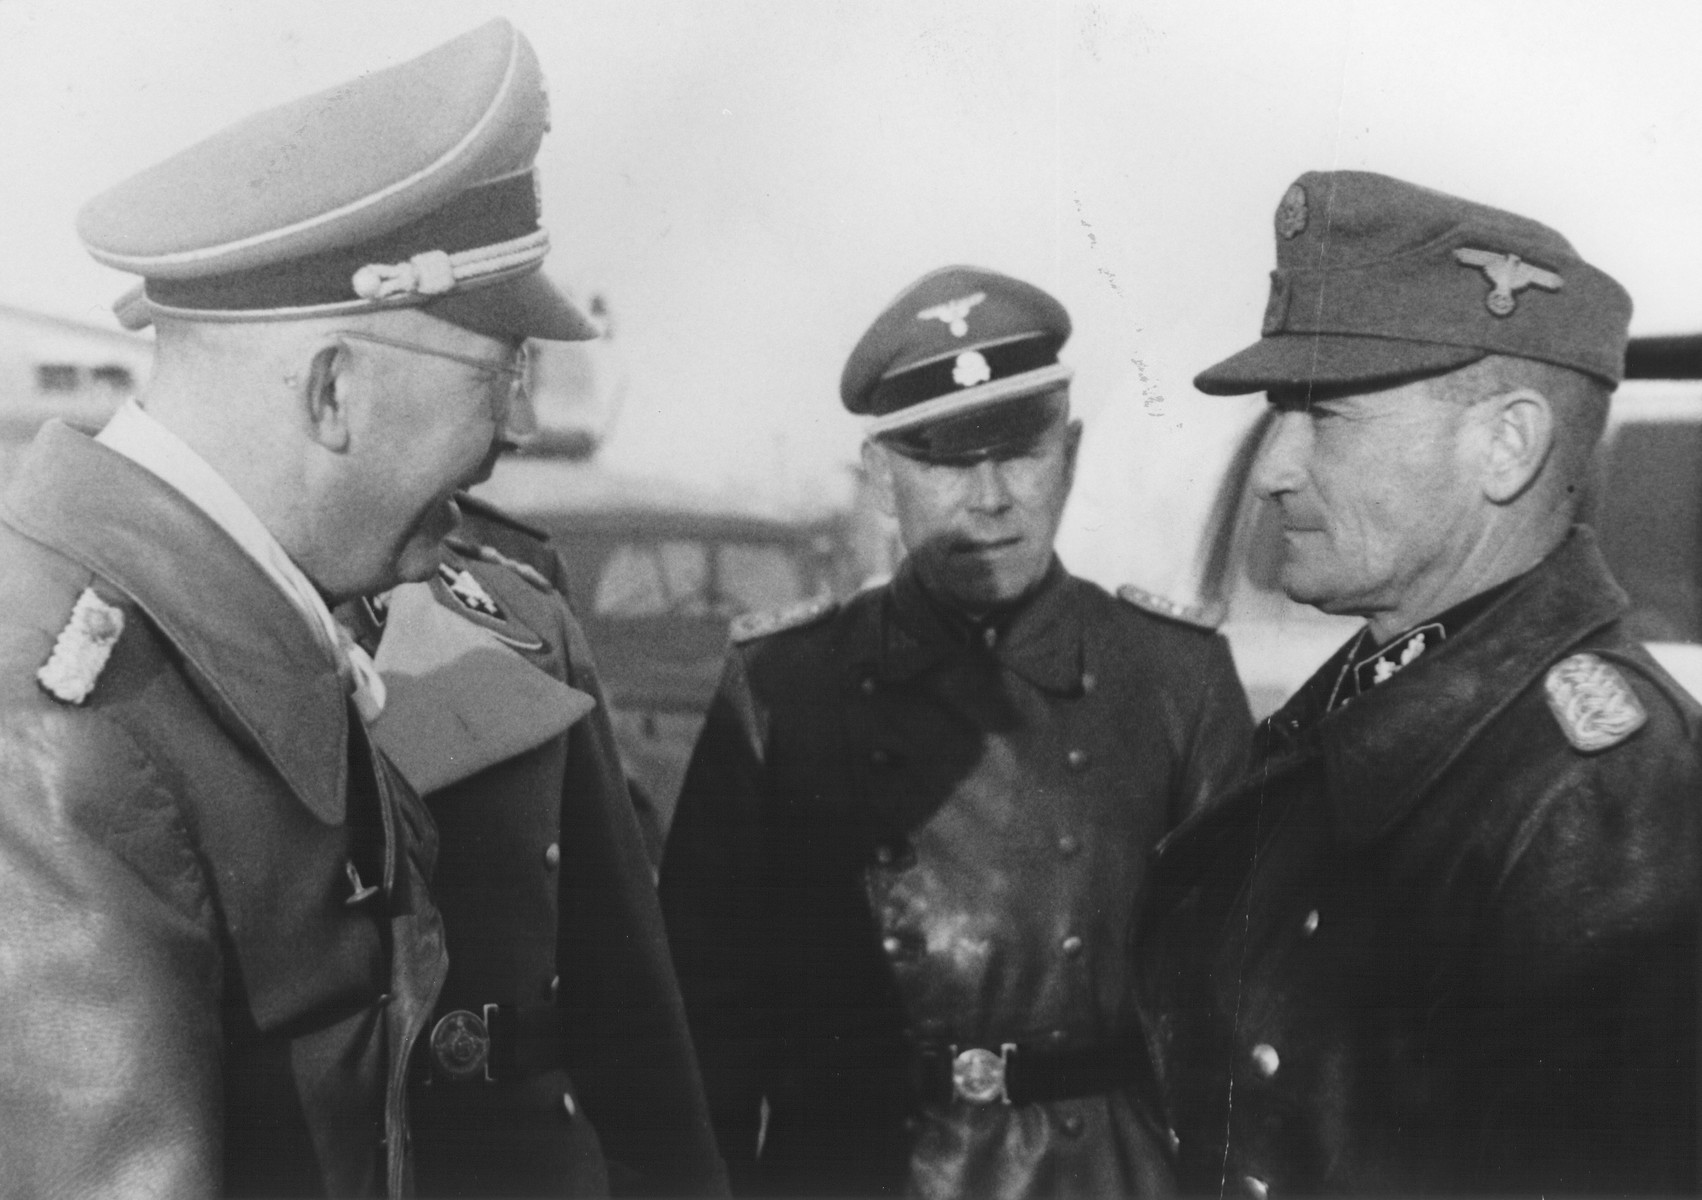 Reichsfuehrer-SS Heinrich Himmler converses with a group of officers.  Pictured on the far right is SS-Gruppenfuhrer Generalleutnant der Waffen-SS Fritz von Scholz.  At the center is Himmler's bodyguard, SS-Hauptsturmfuhrer Josef Kiermaier.